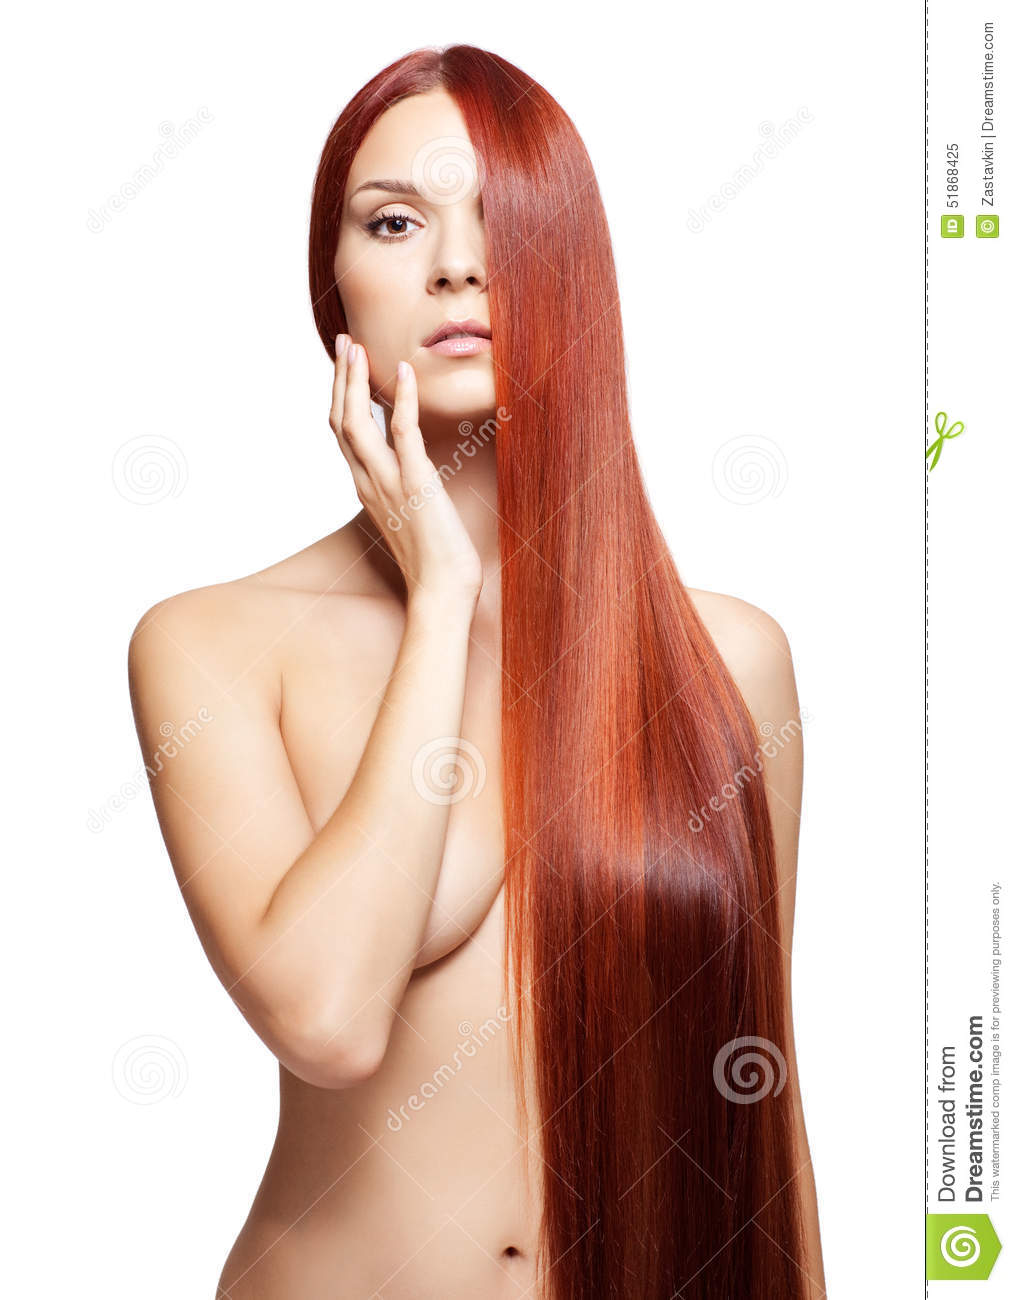 Nude Red Hair Woman 44